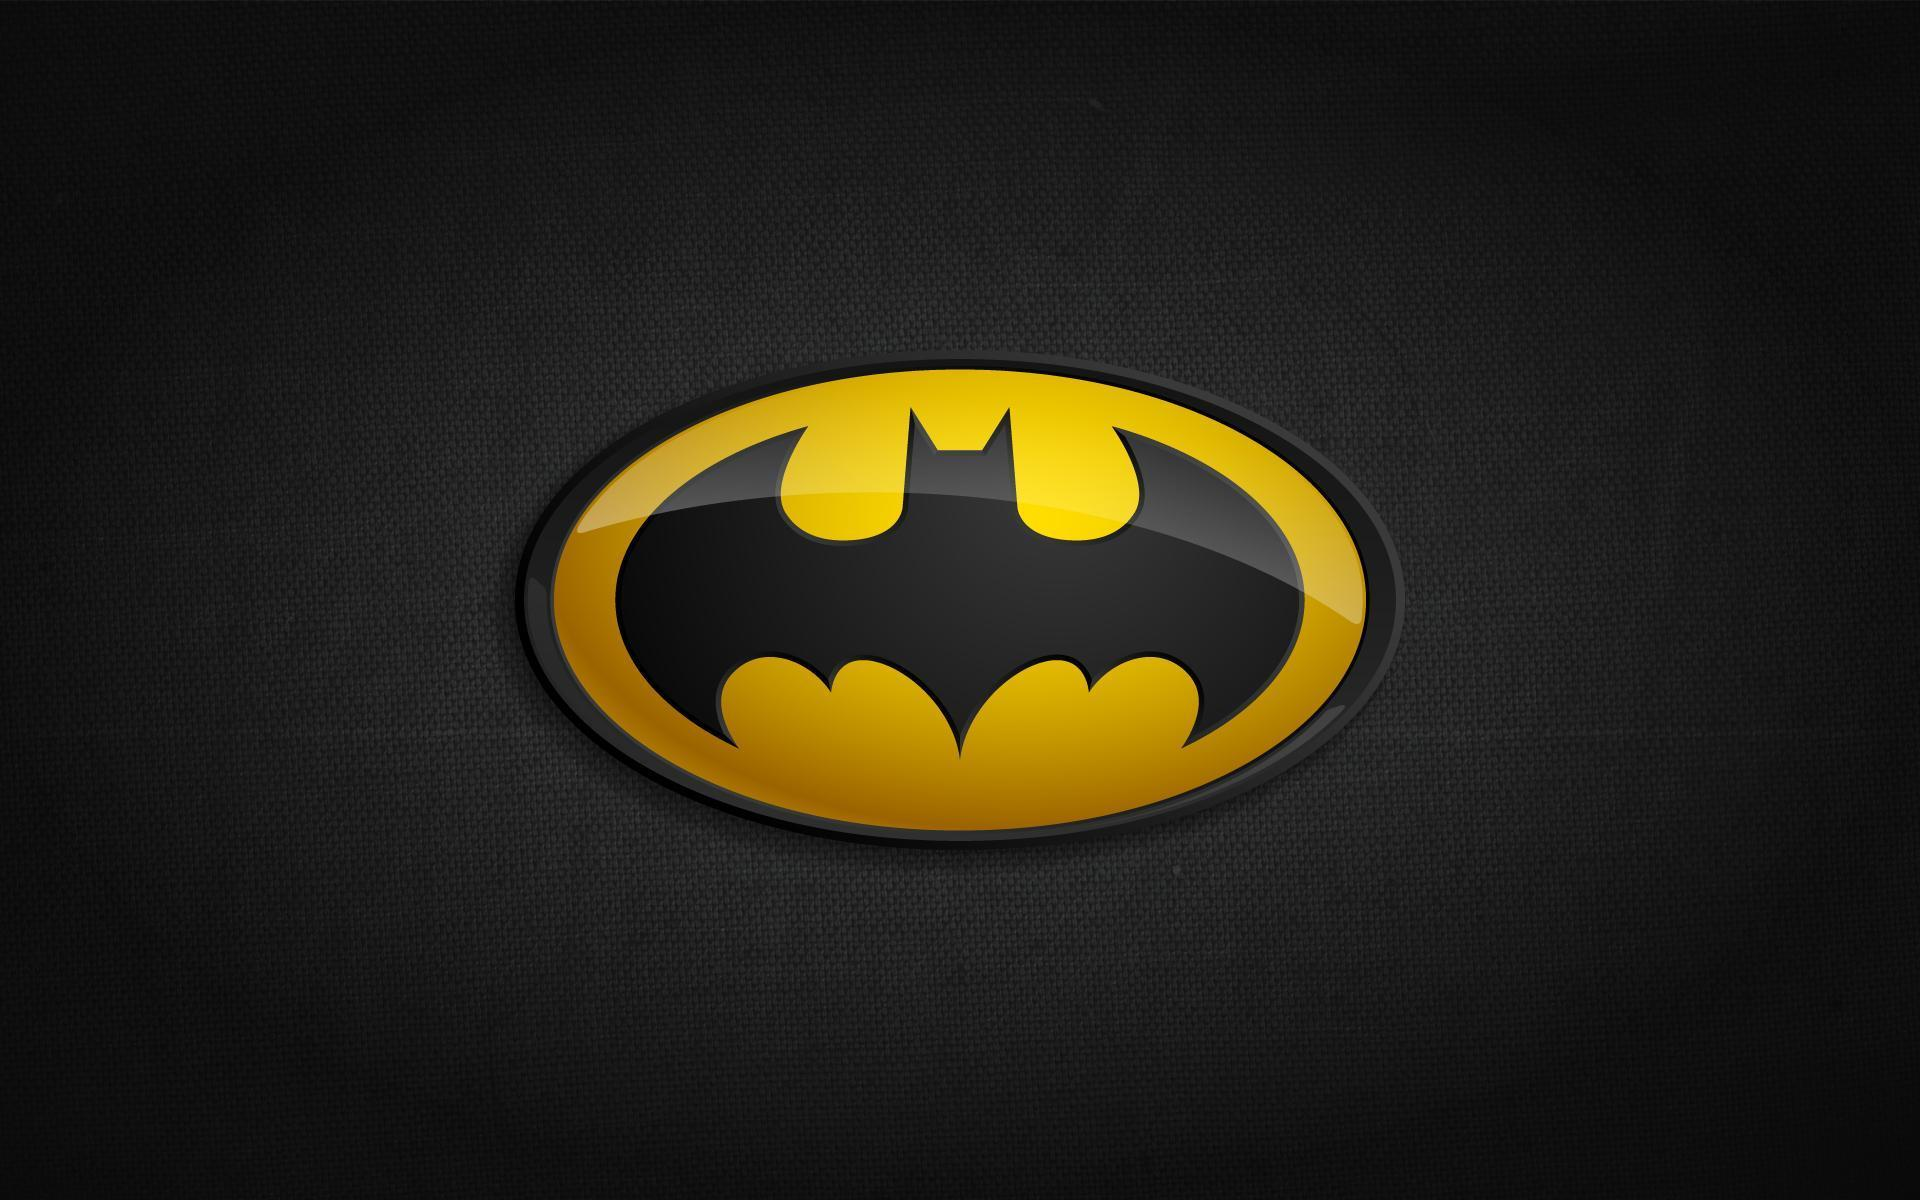 Best Wallpaper Macbook Batman - deJFW8y  2018_451639.jpg